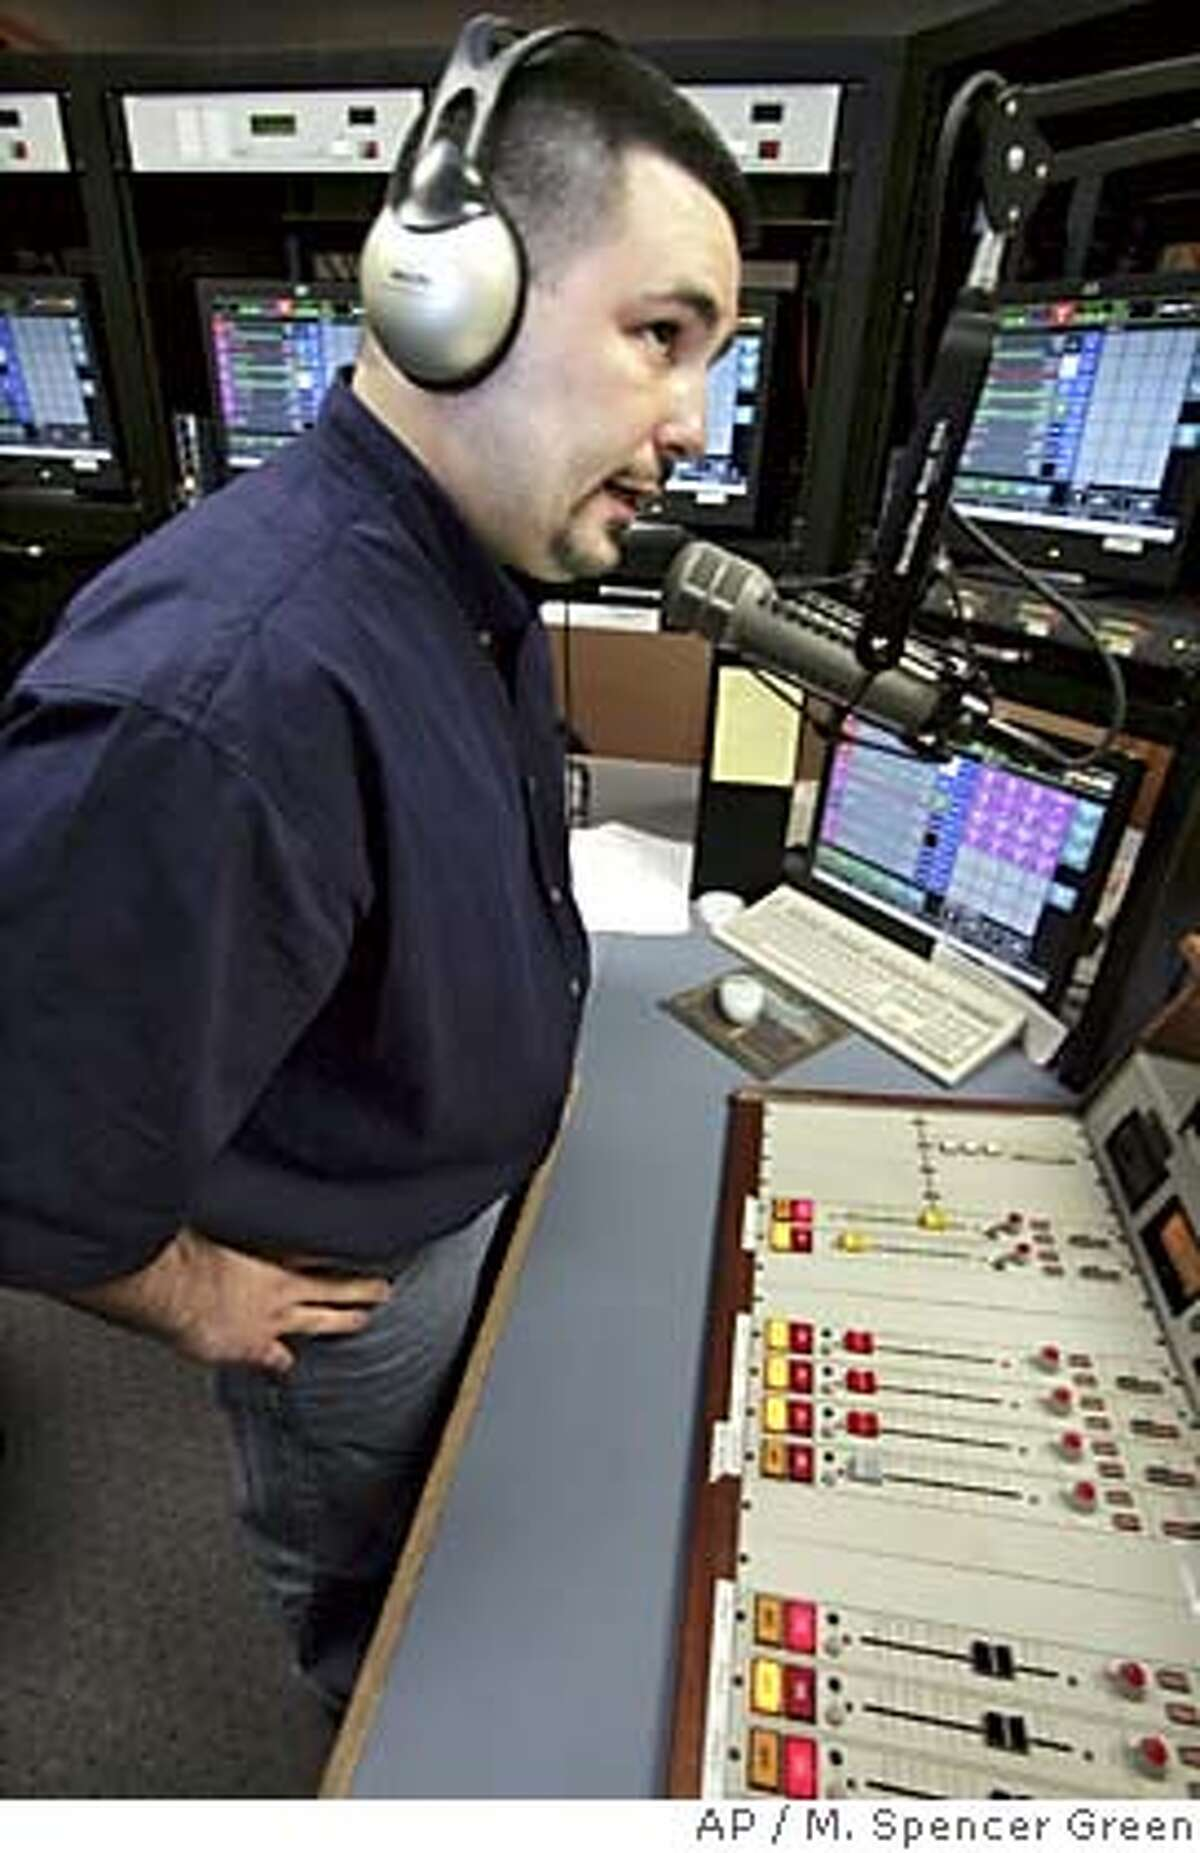 Matt DuBiel, program director and afternoon personality for radio station Nine FM, does a live piece on the air Friday May 13, 2005 in Chicago. The station has begun a